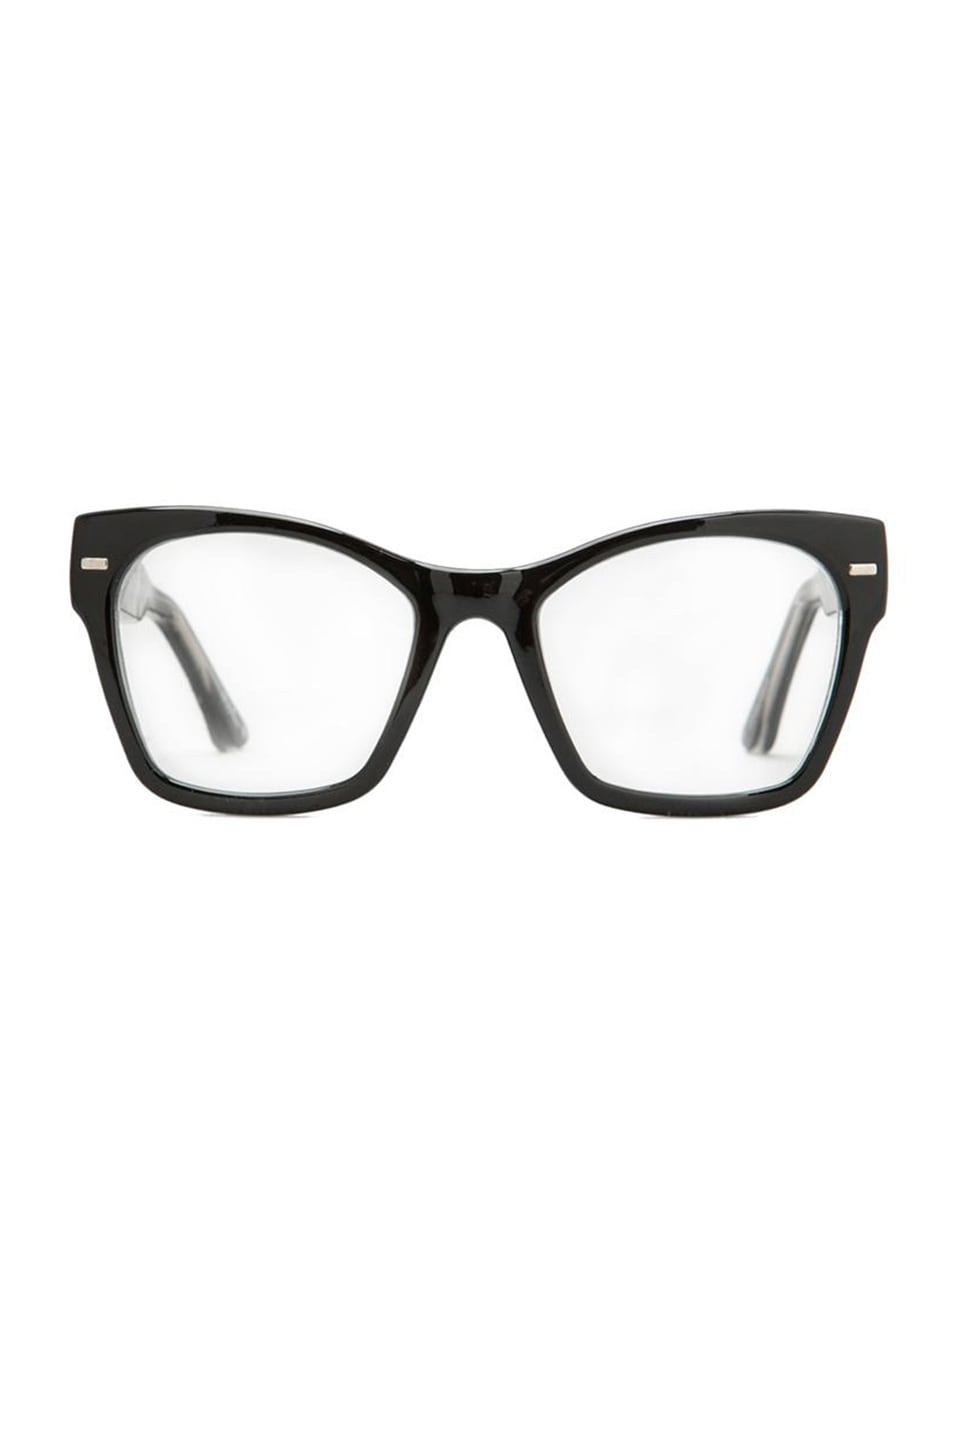 Spitfire Coco in Black/Clear